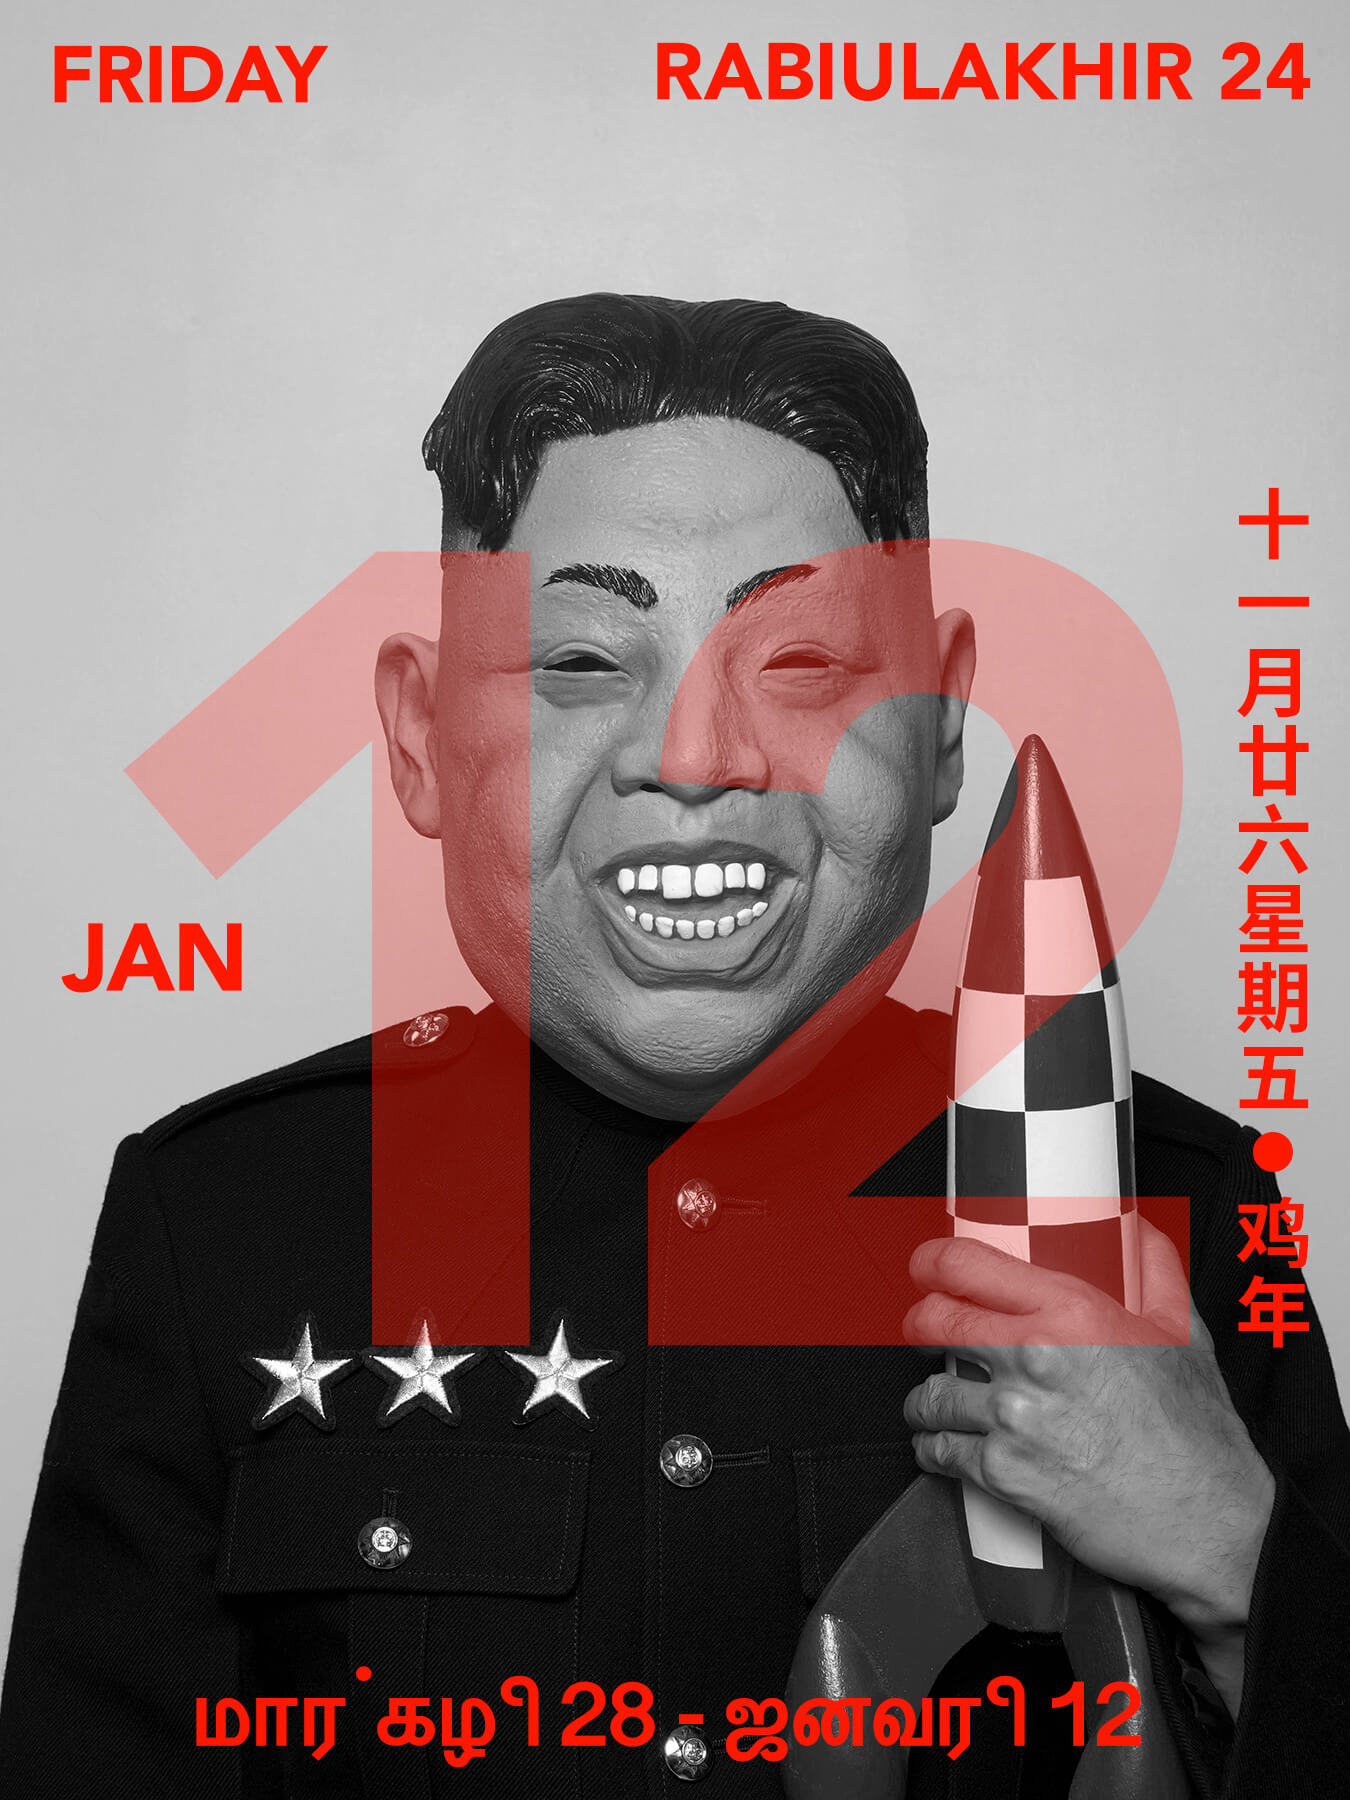 12 Jan 2018 Derong is photographed in a Kim Jong-un mask